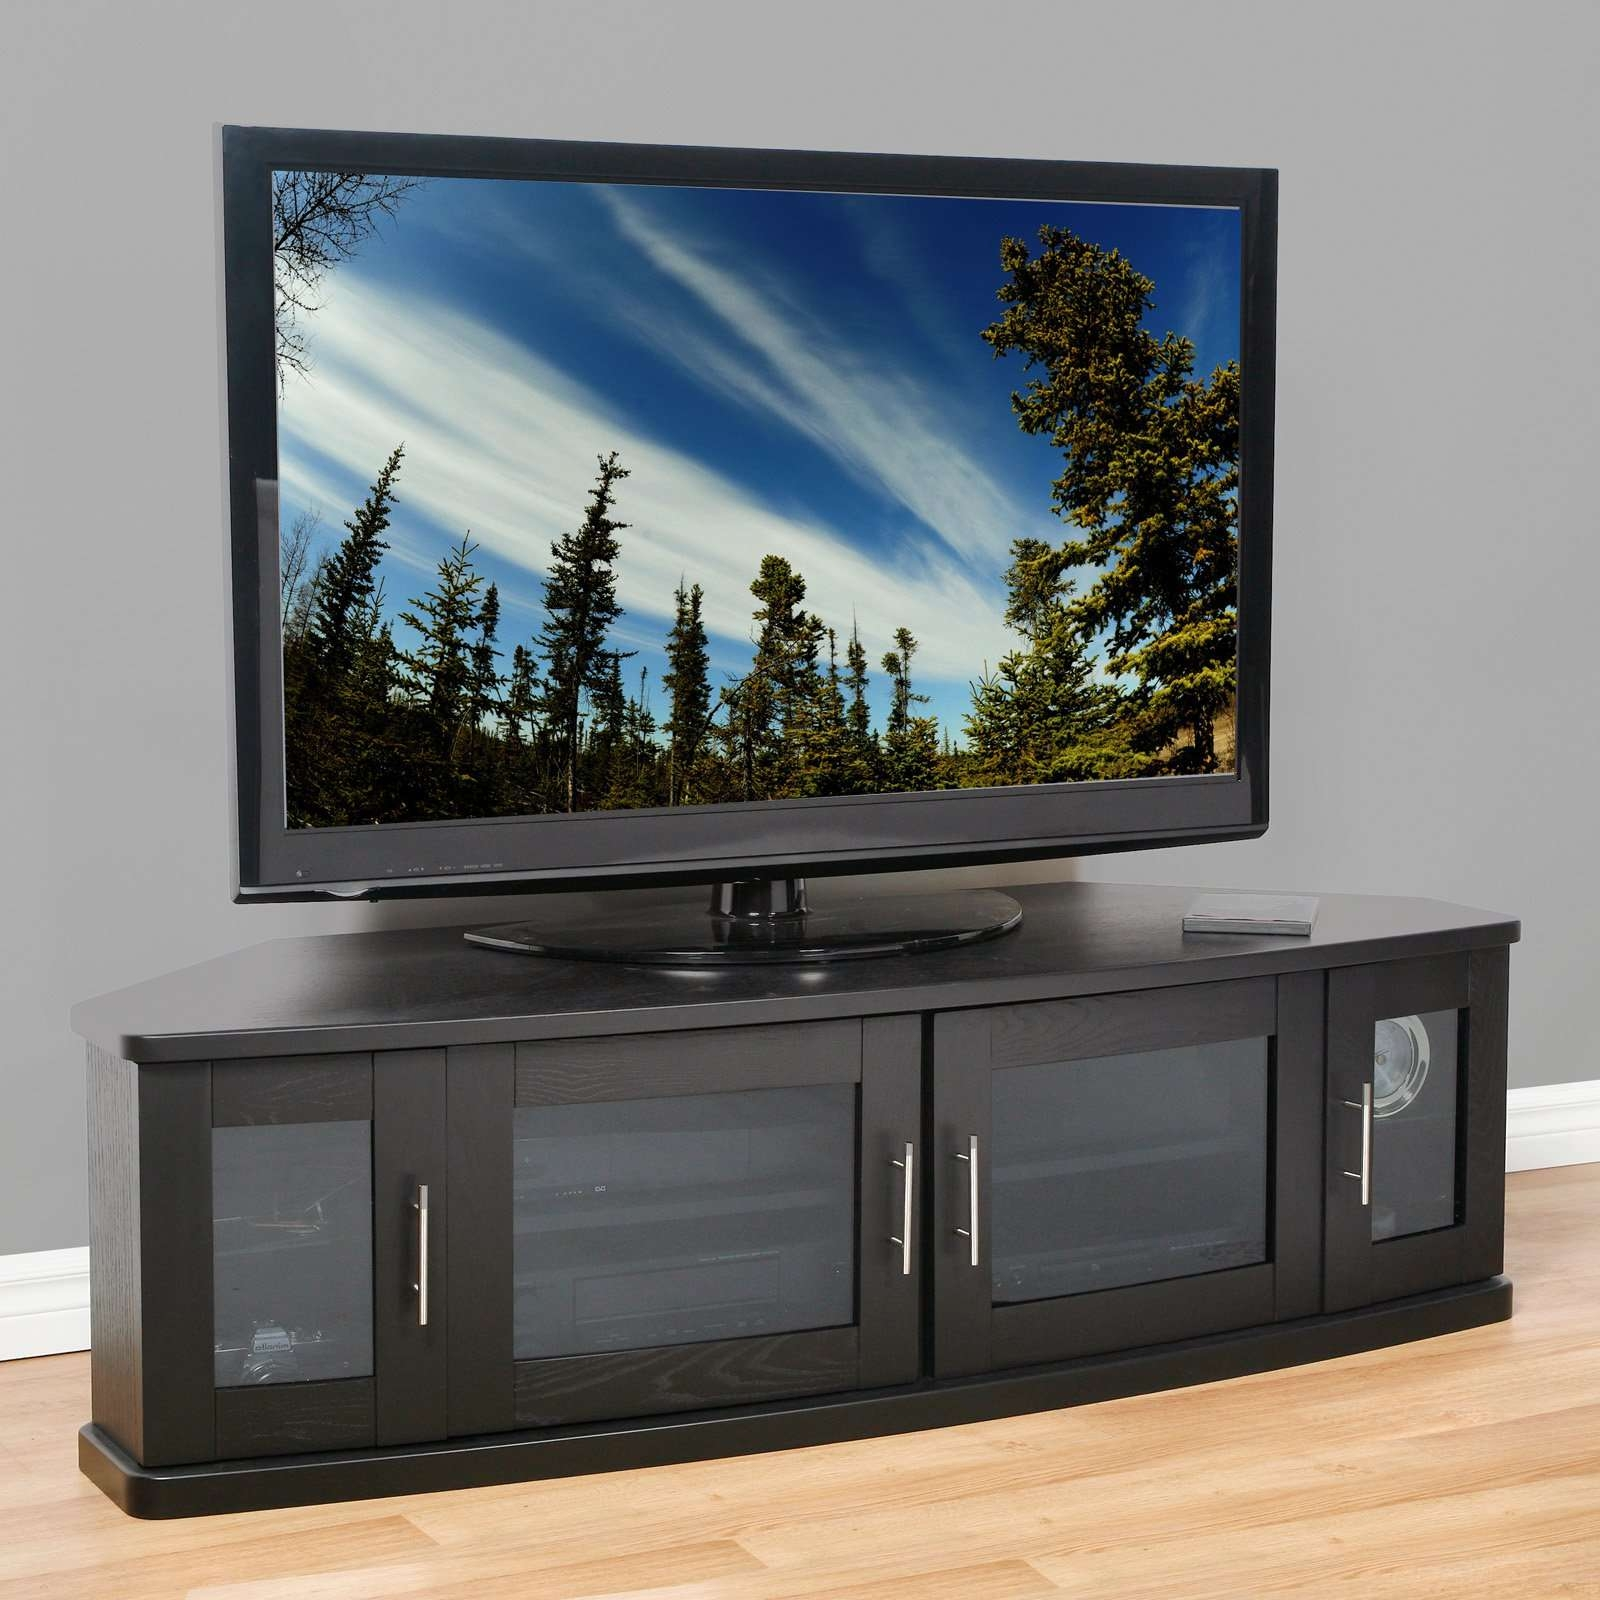 Modern Black Wooden Tv Stand With Frosted Glass Doors Of Dazzling With Glass Tv Cabinets With Doors (View 11 of 20)